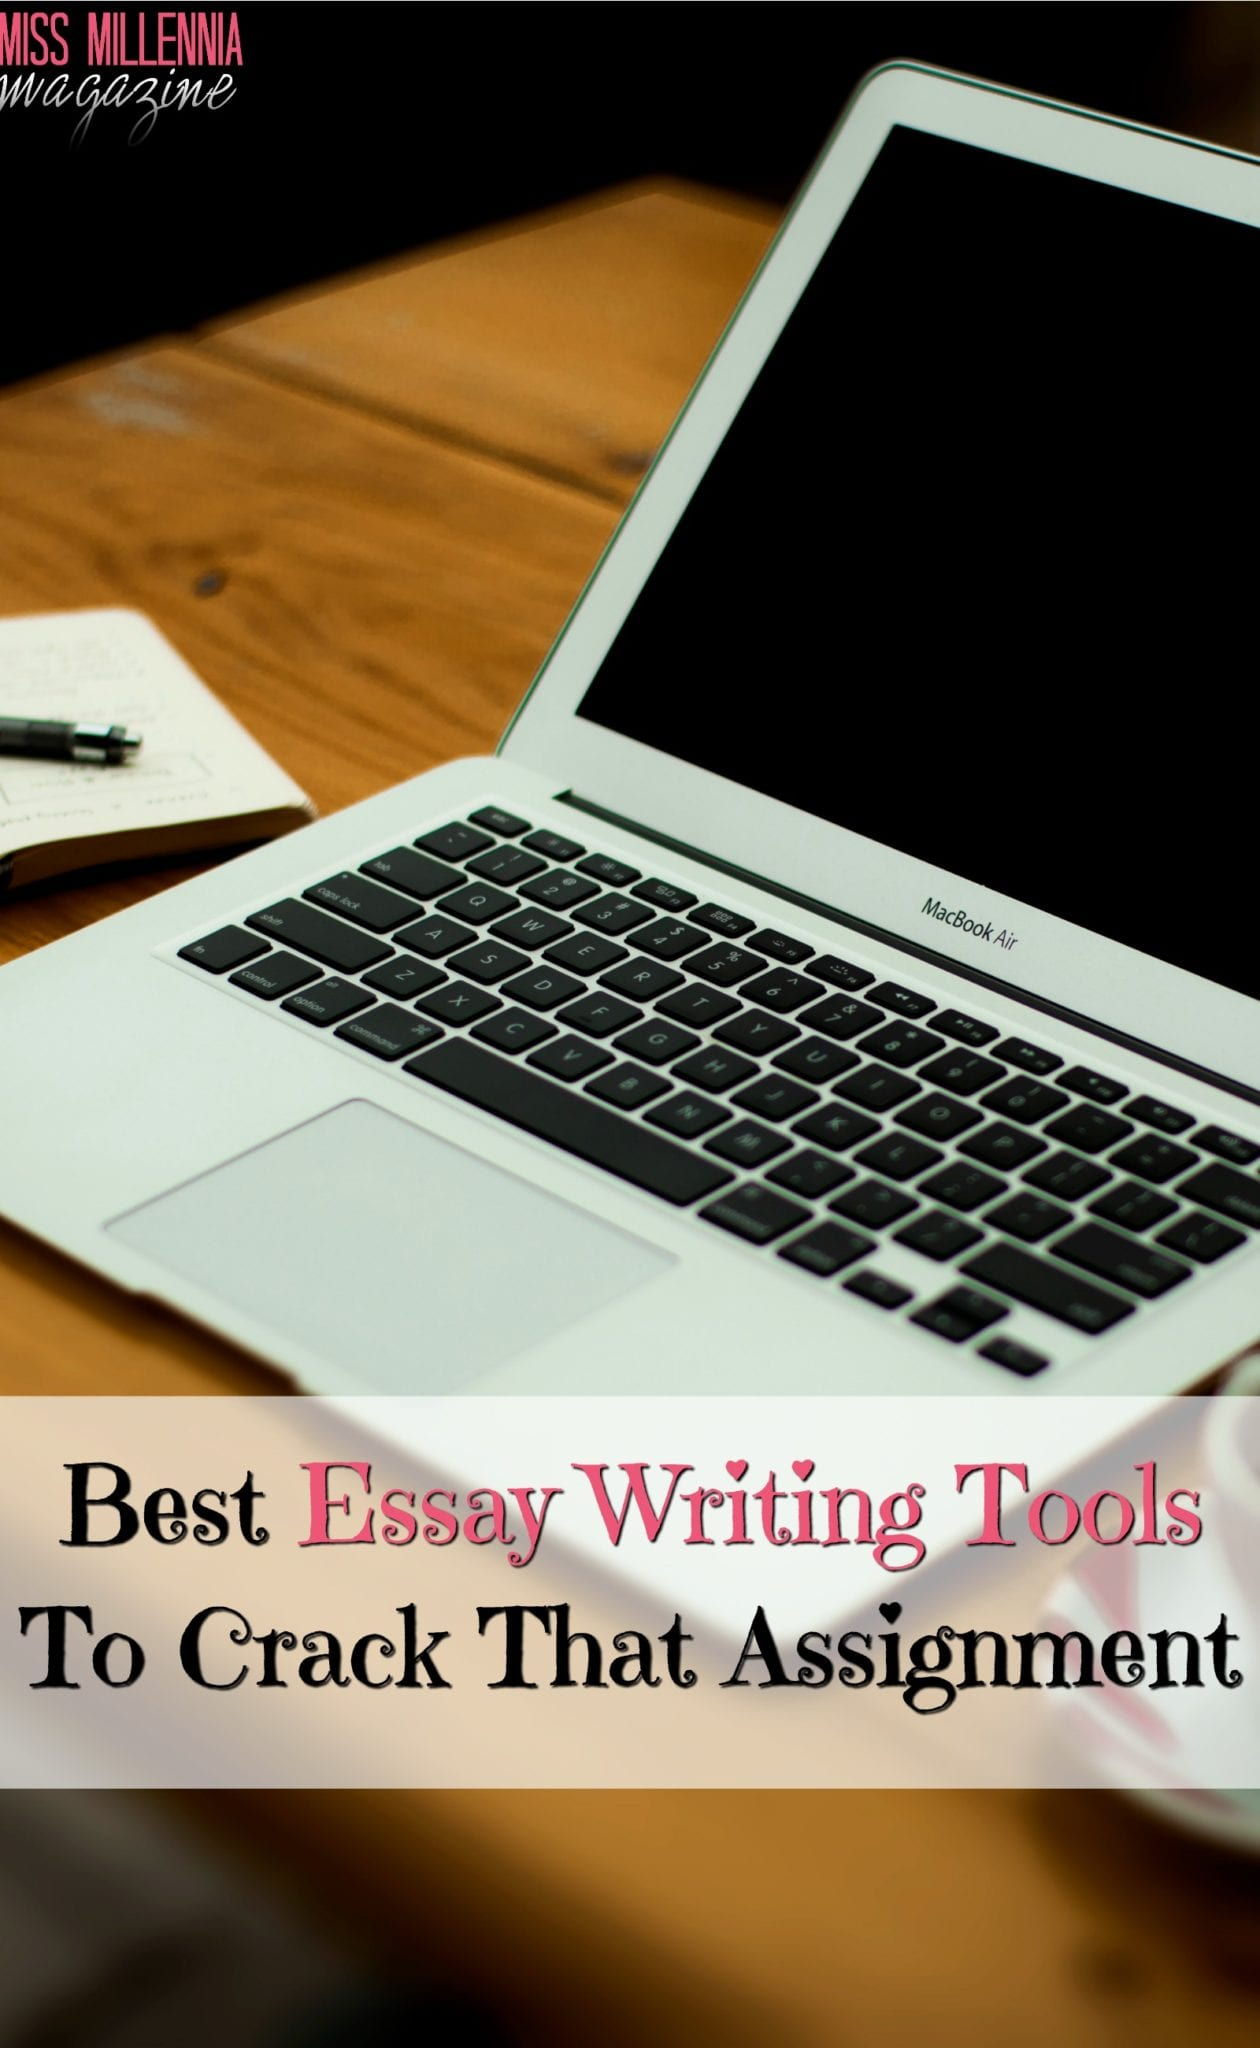 best-essay-writing-tools-to-crack-that-assignment